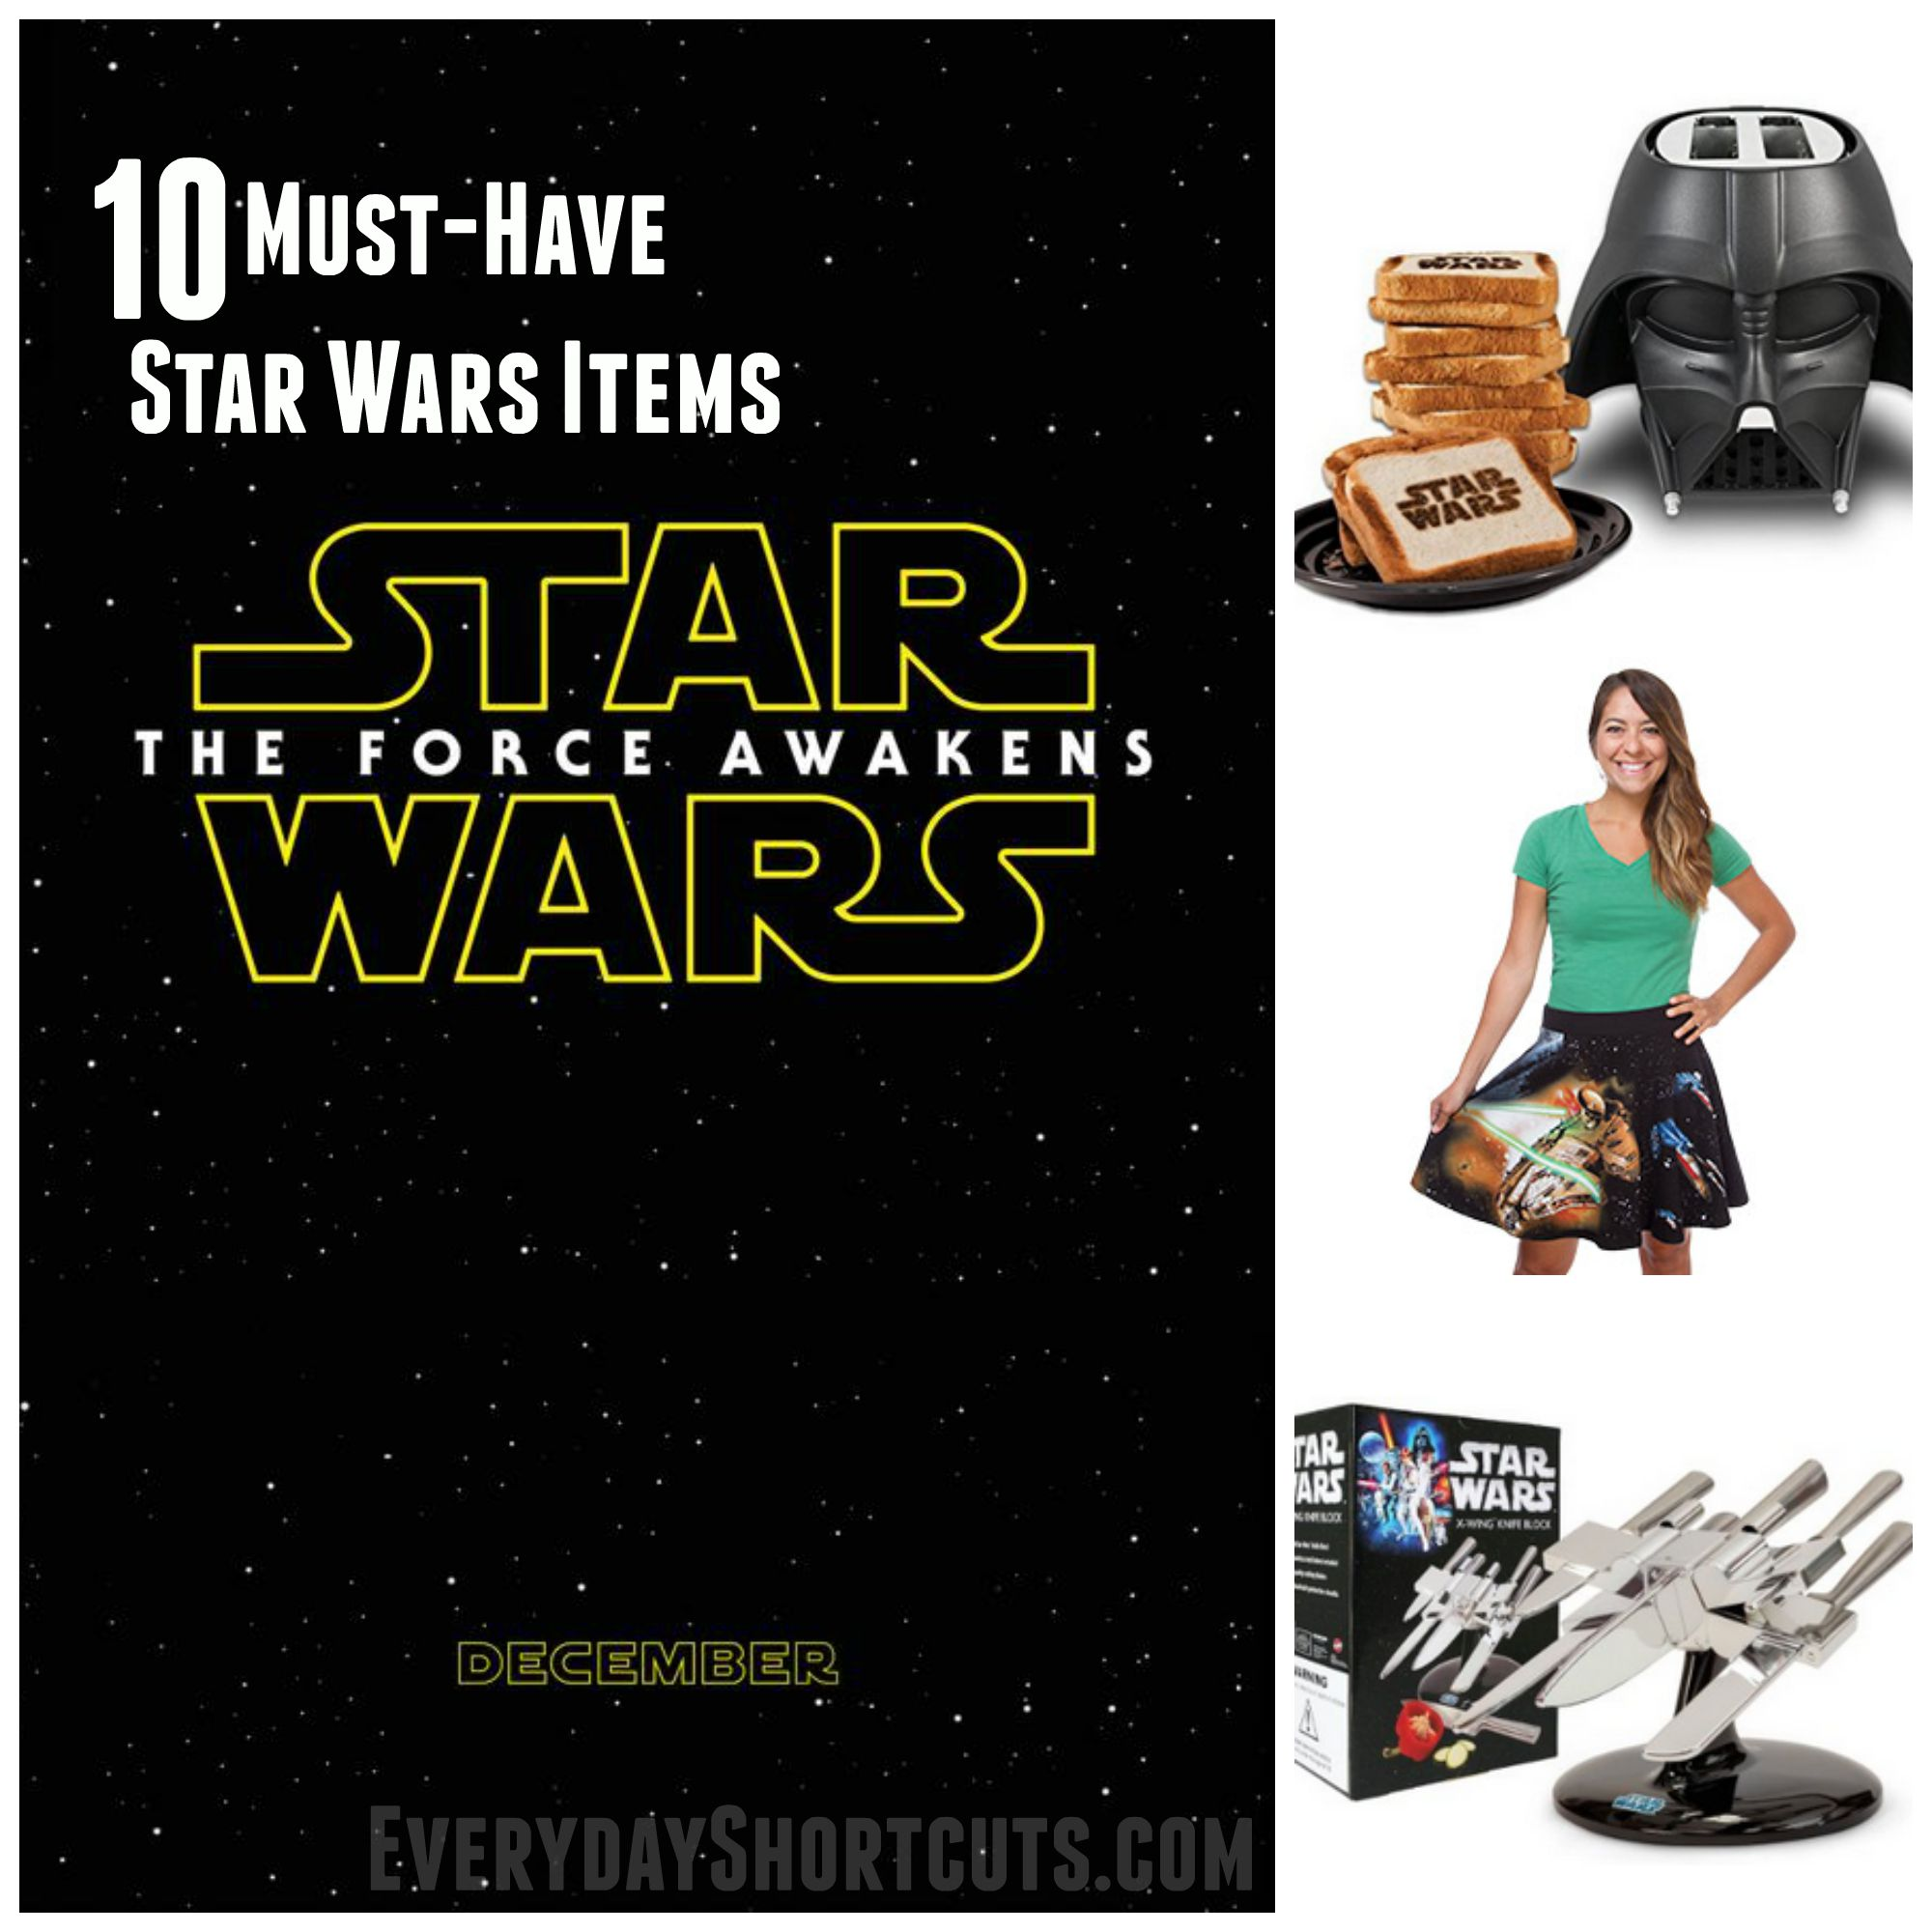 must-have star wars items